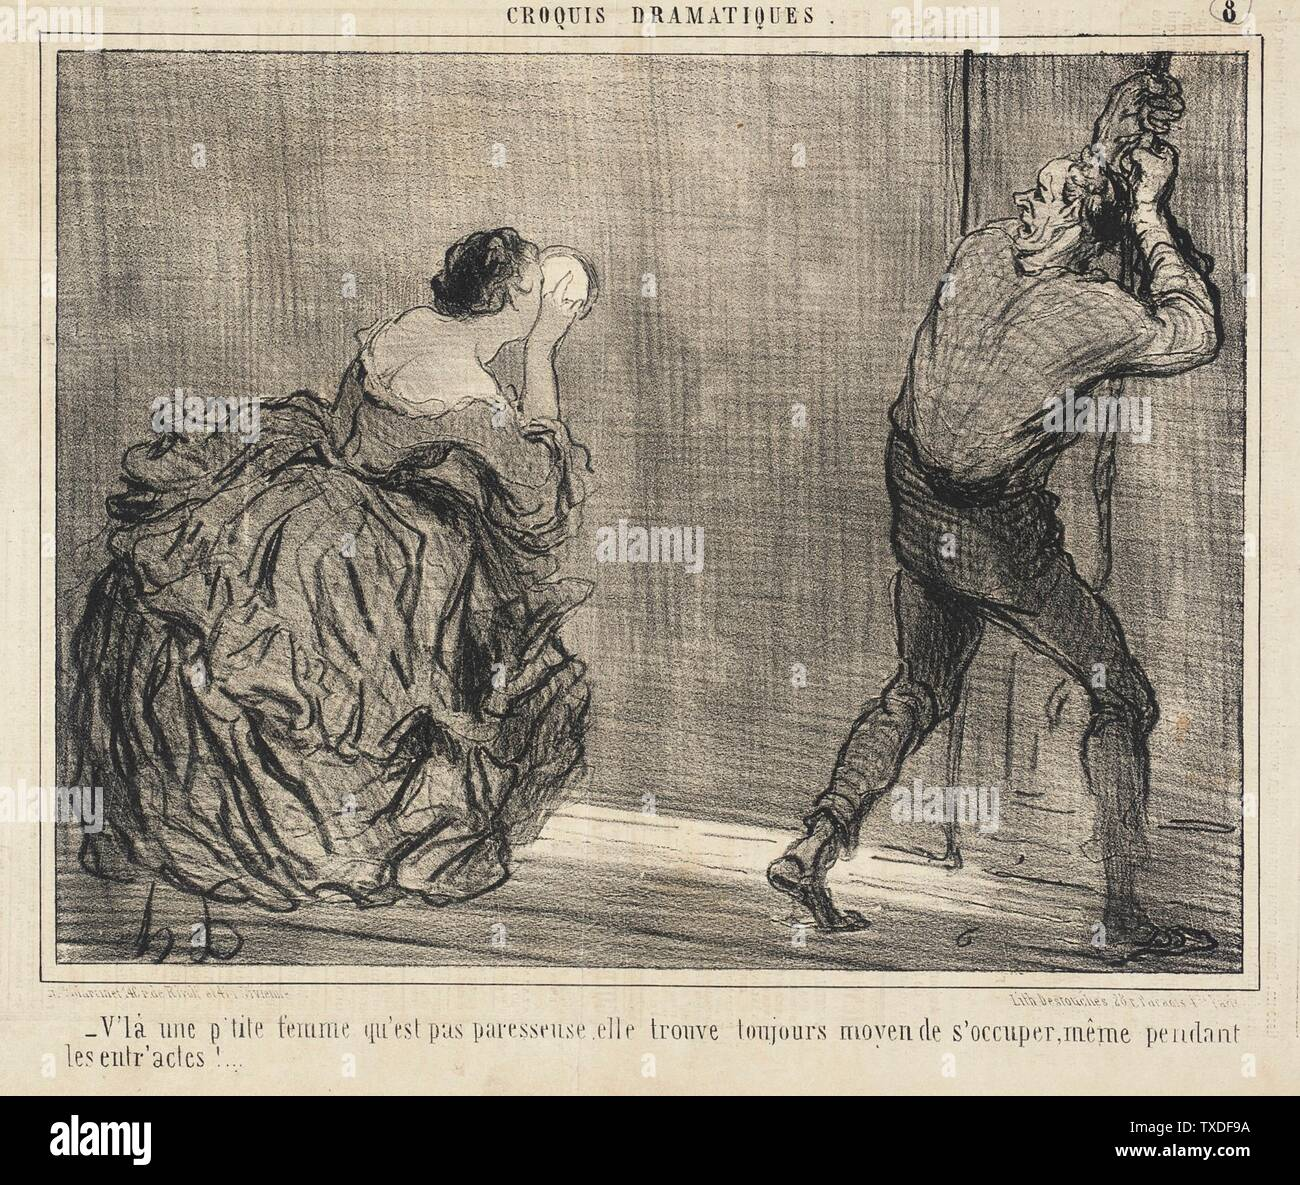 """""""V'là une p'tite femme qu'est pas paresseuse...; English:  France, 1857 Series: Croquis dramatiques, no. 8 Periodical: Le Charivari, 7 January 1857 Prints; lithographs Lithograph Sheet: 8 x 10 3/8 in. (20.32 x 26.35 cm) Gift of Mrs. Florence Victor from The David and Florence Victor Collection (M.91.82.298) Prints and Drawings; 1857date QS:P571,+1857-00-00T00:00:00Z/9; """" Stock Photo"""